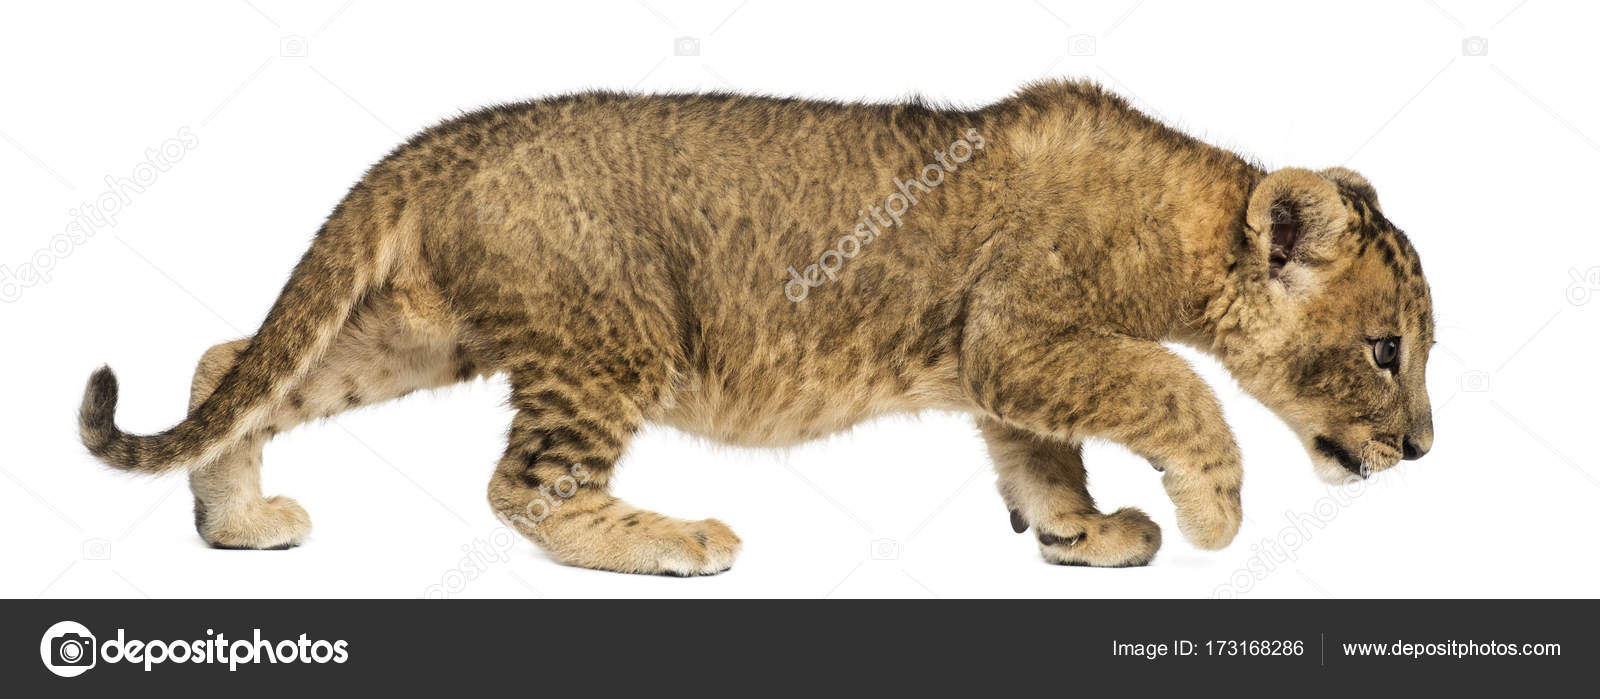 Side view of a Lion cub walking, curious, 7 weeks old ... - photo#26